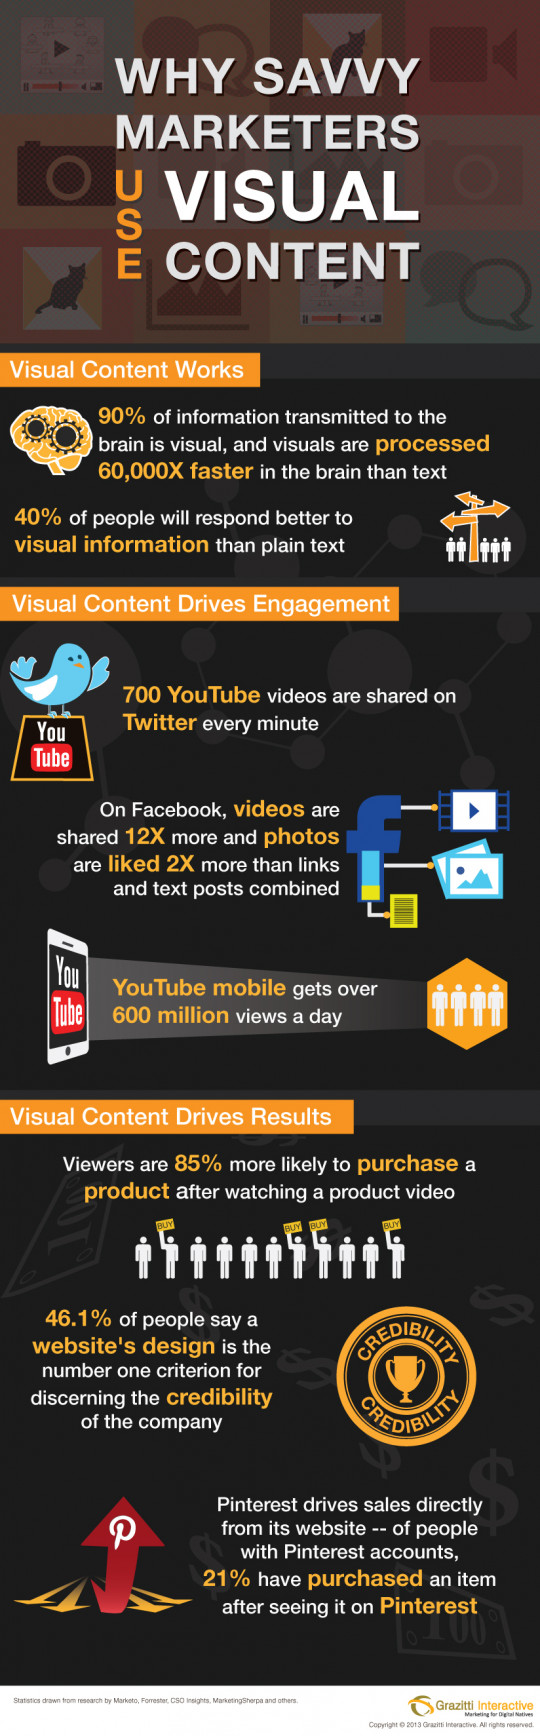 Why Savvy Marketers Use VISUAL Content ? [Infographic]